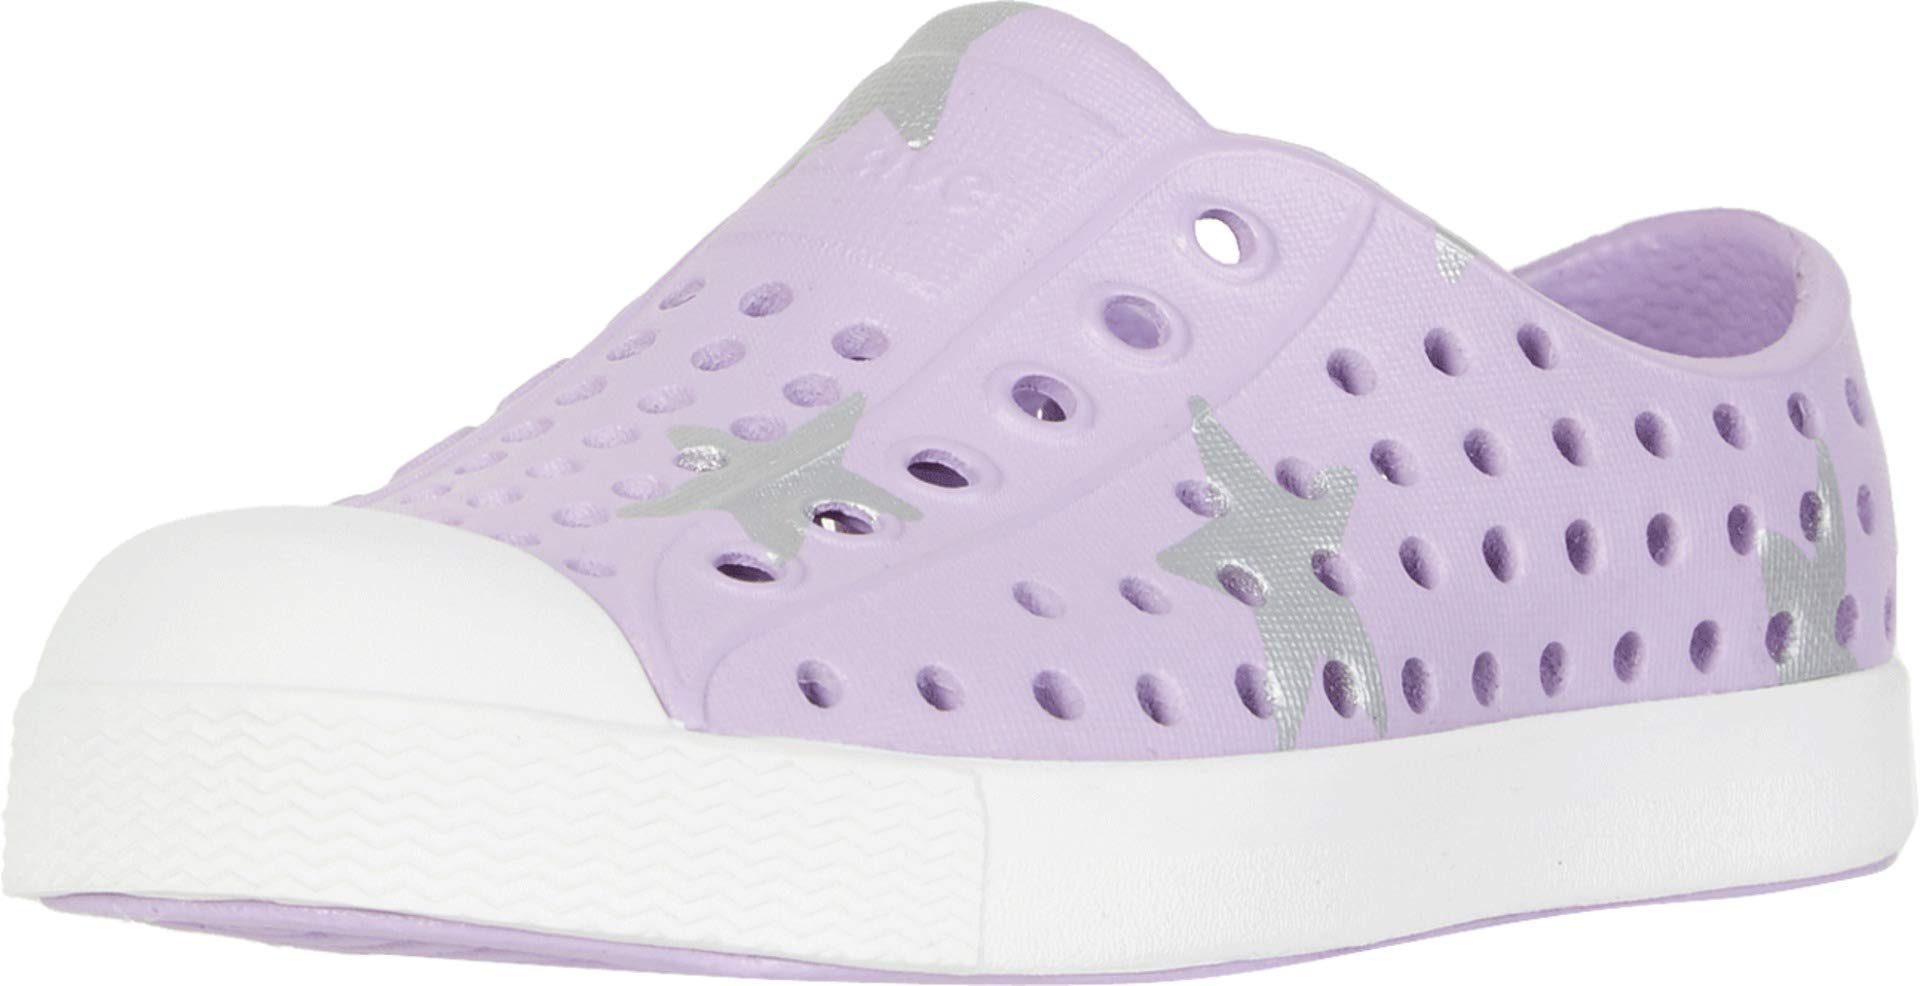 Native Kids Shoes Baby Girl's Jefferson Print (Toddler/Little Kid) Lavender Purple/Shell White/Silver Big Star 4 M US Toddler